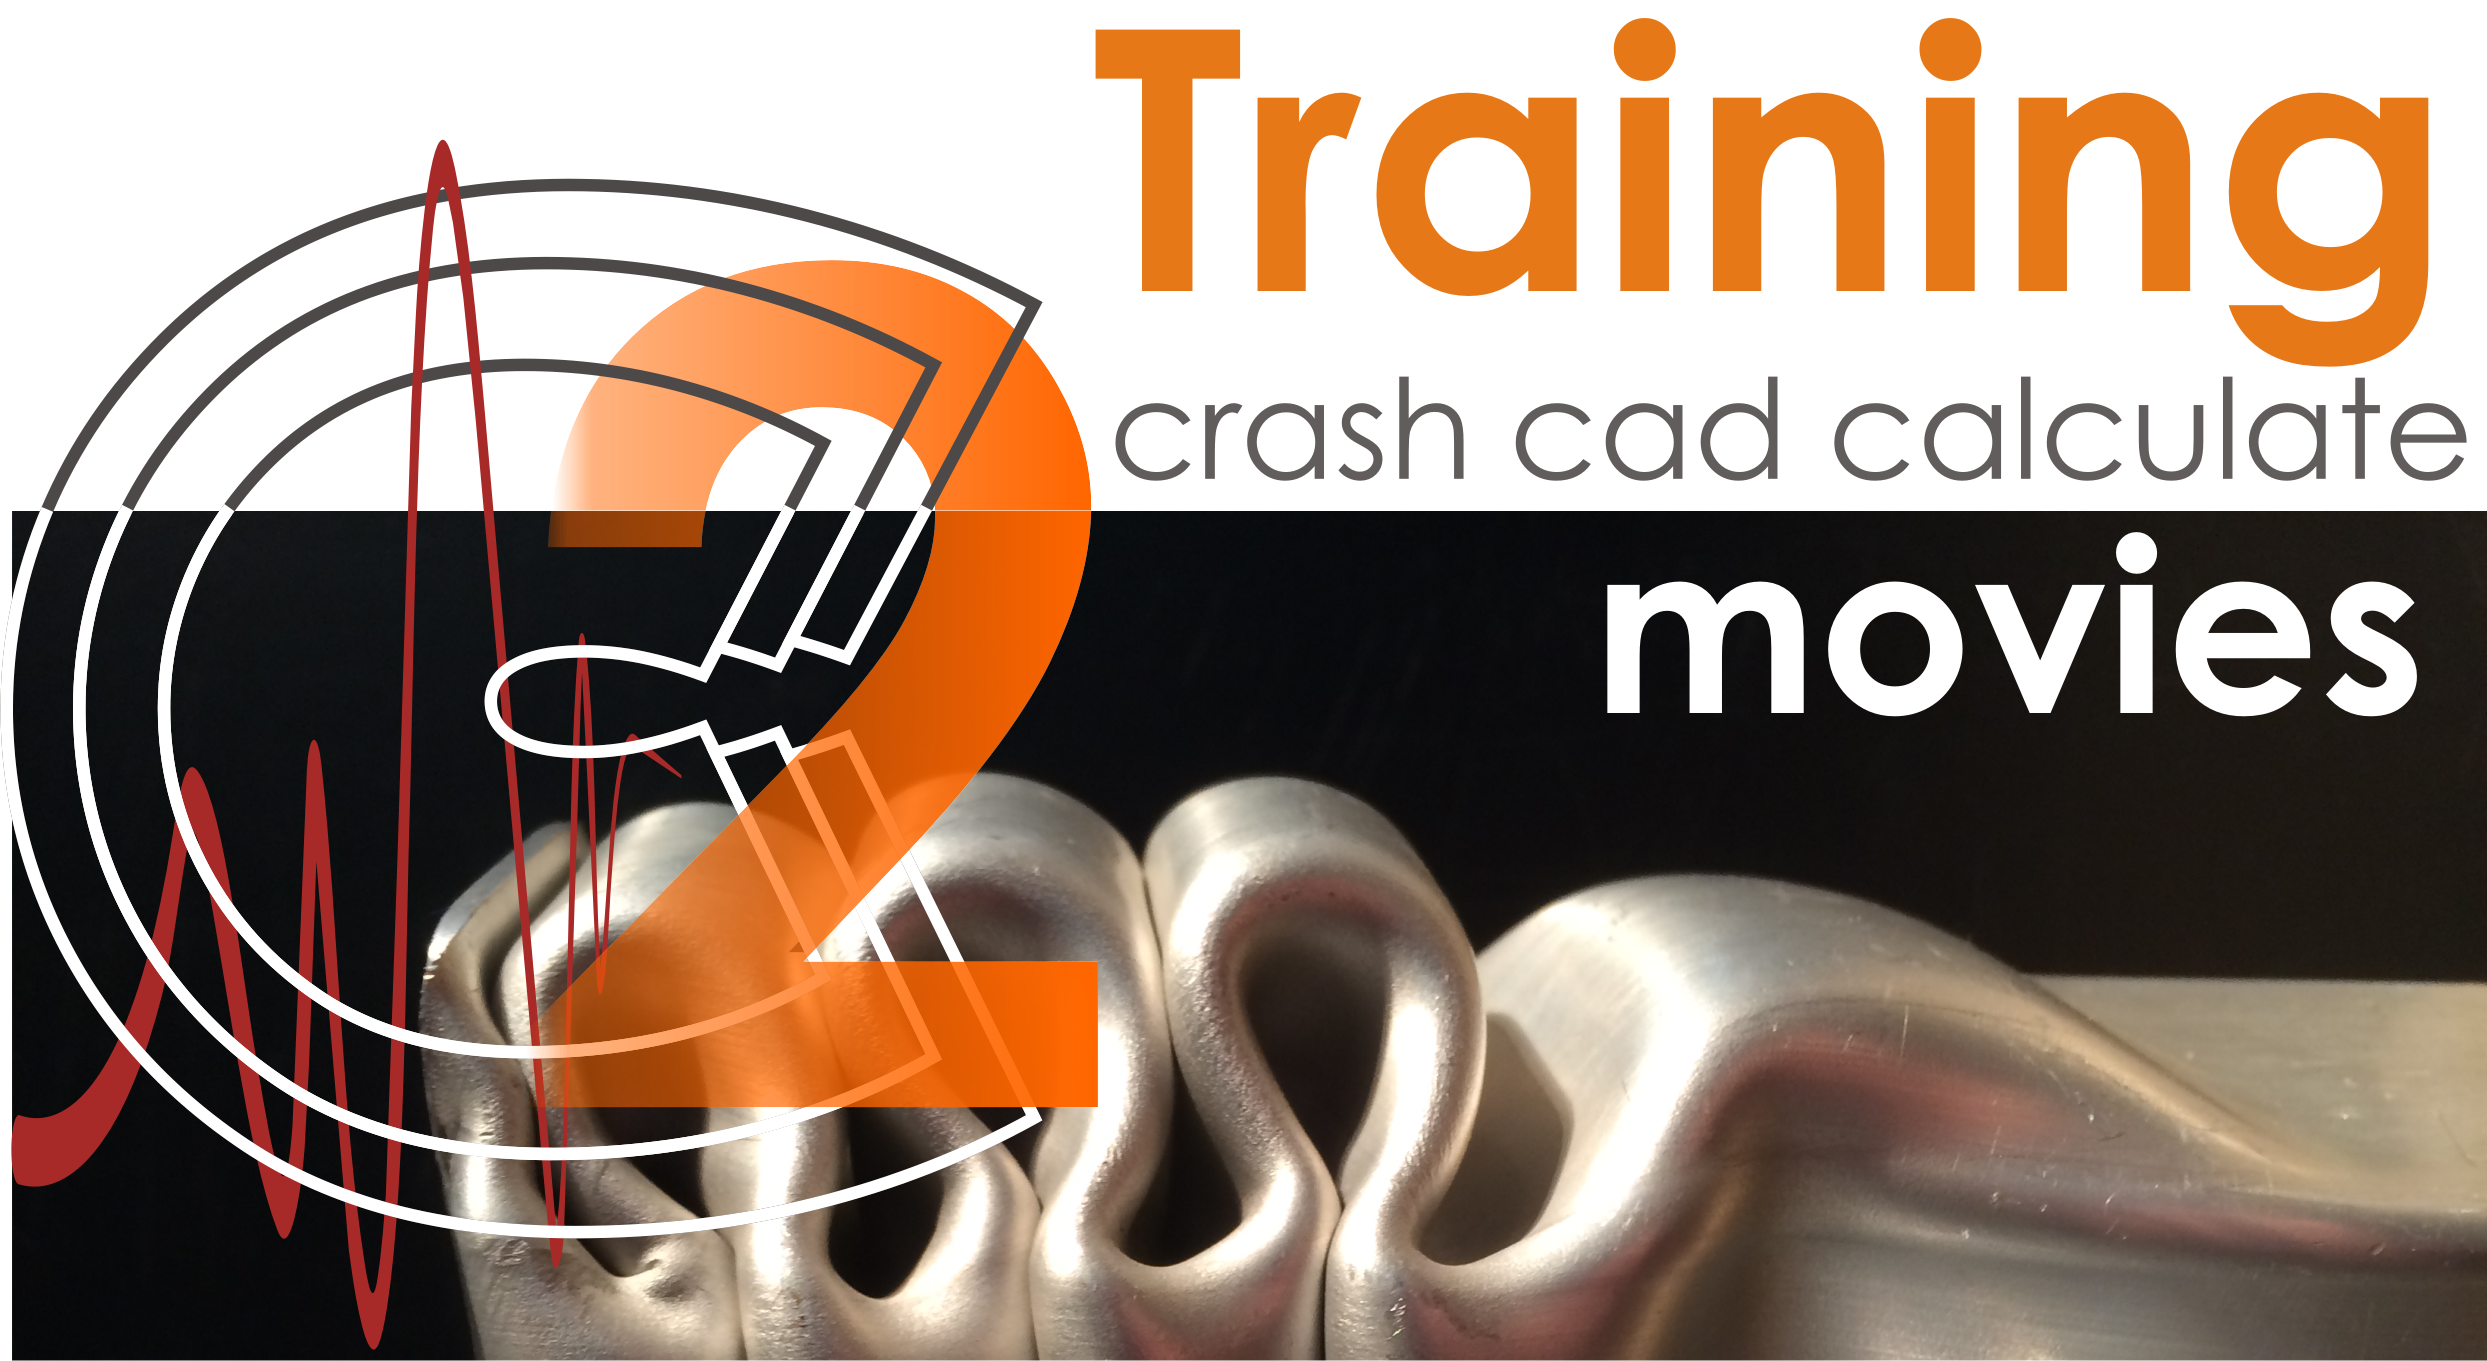 Online Training: Crash Cad Calculate by Impact Design Europe